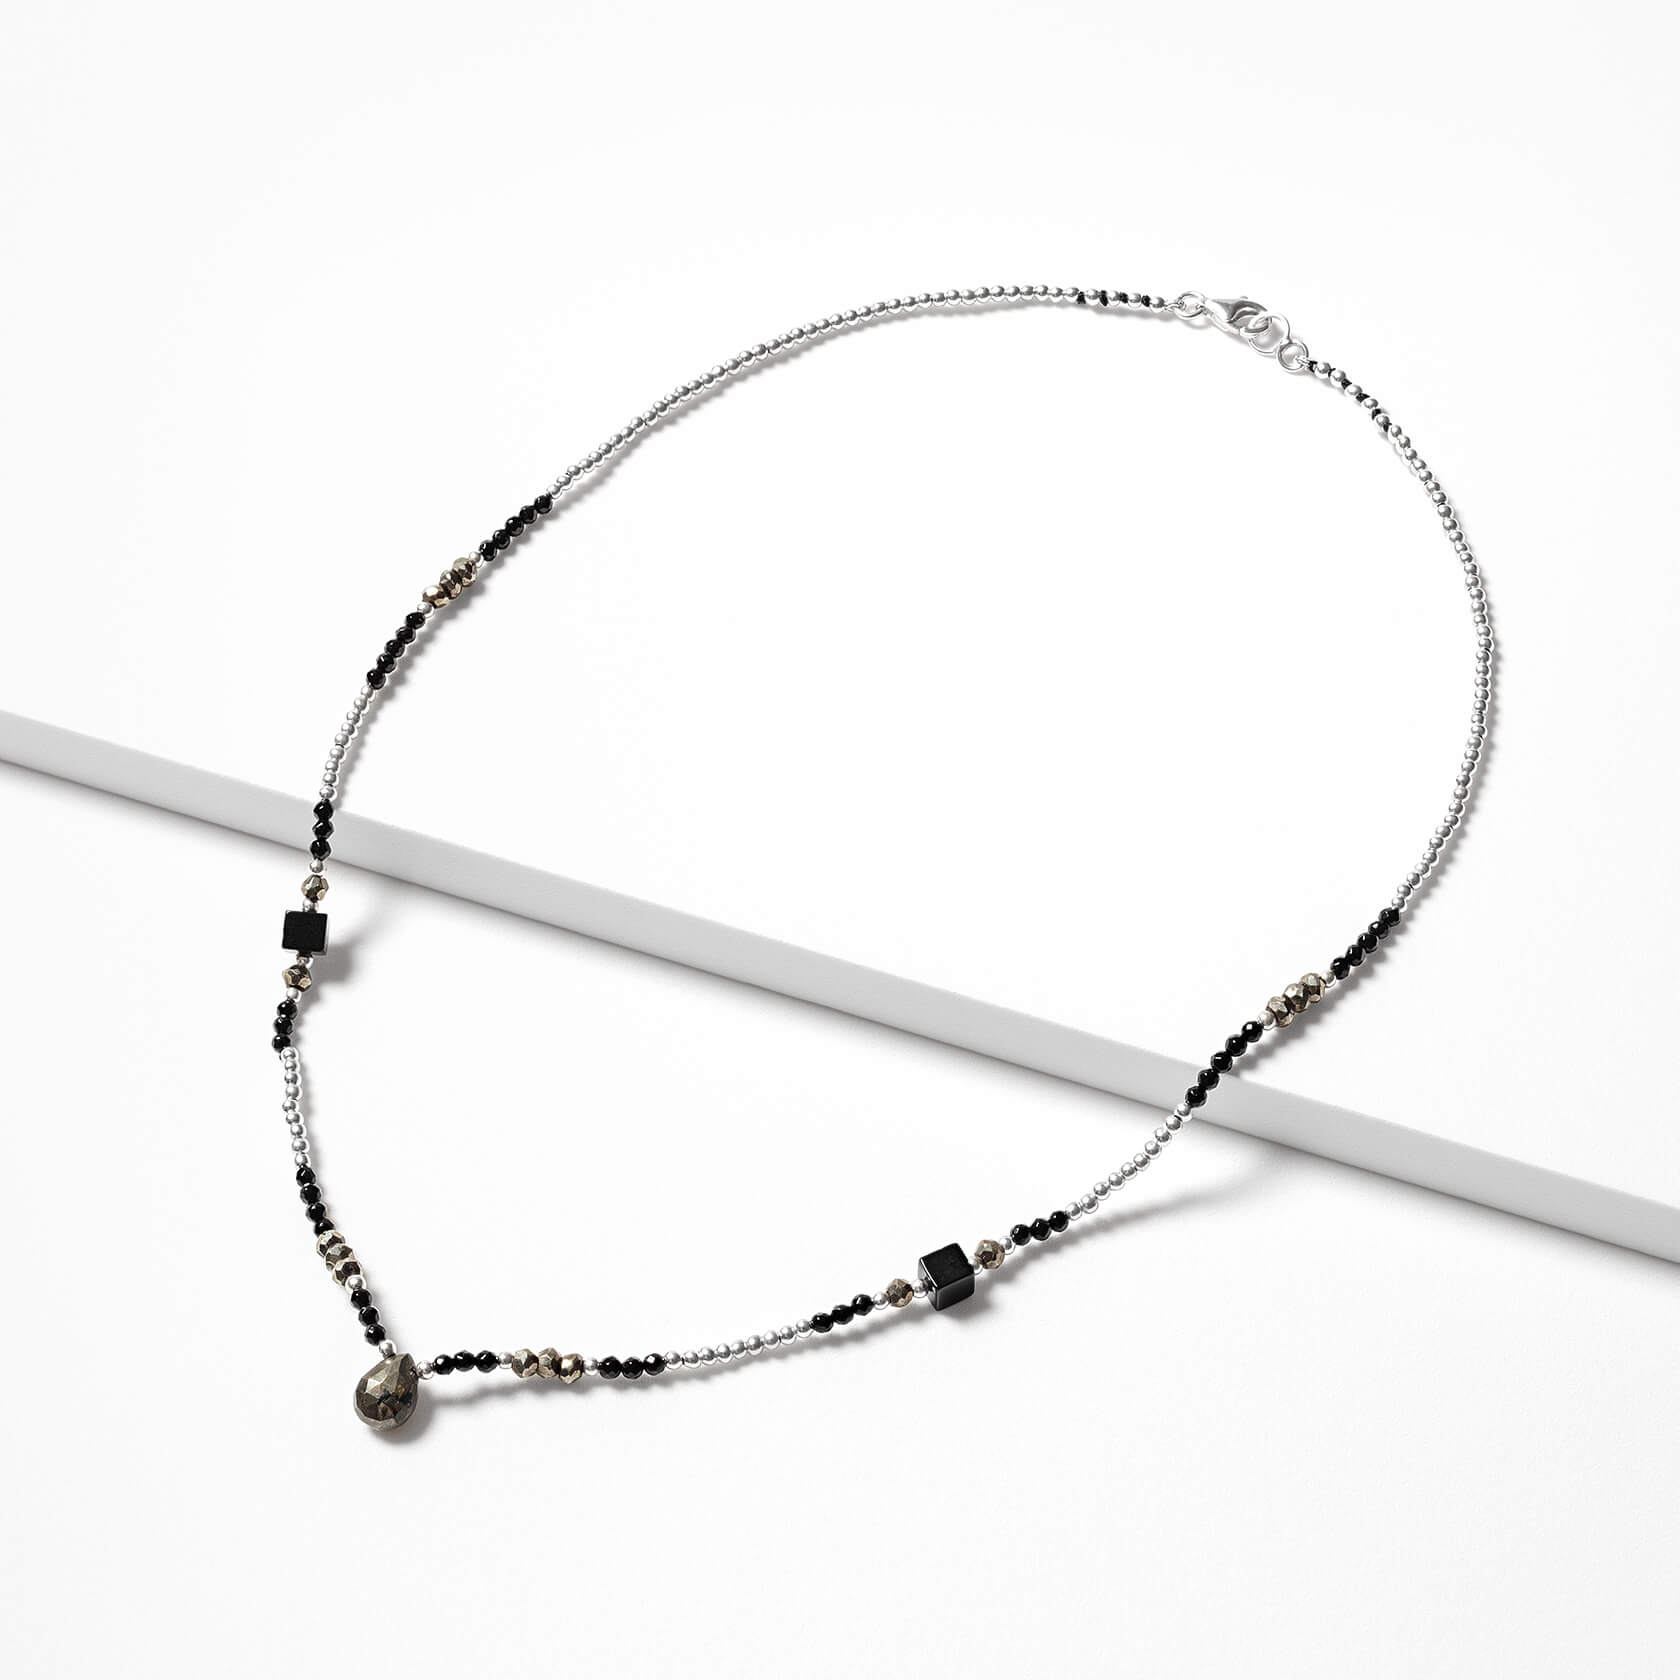 Onyx and muscovite short necklace marybola